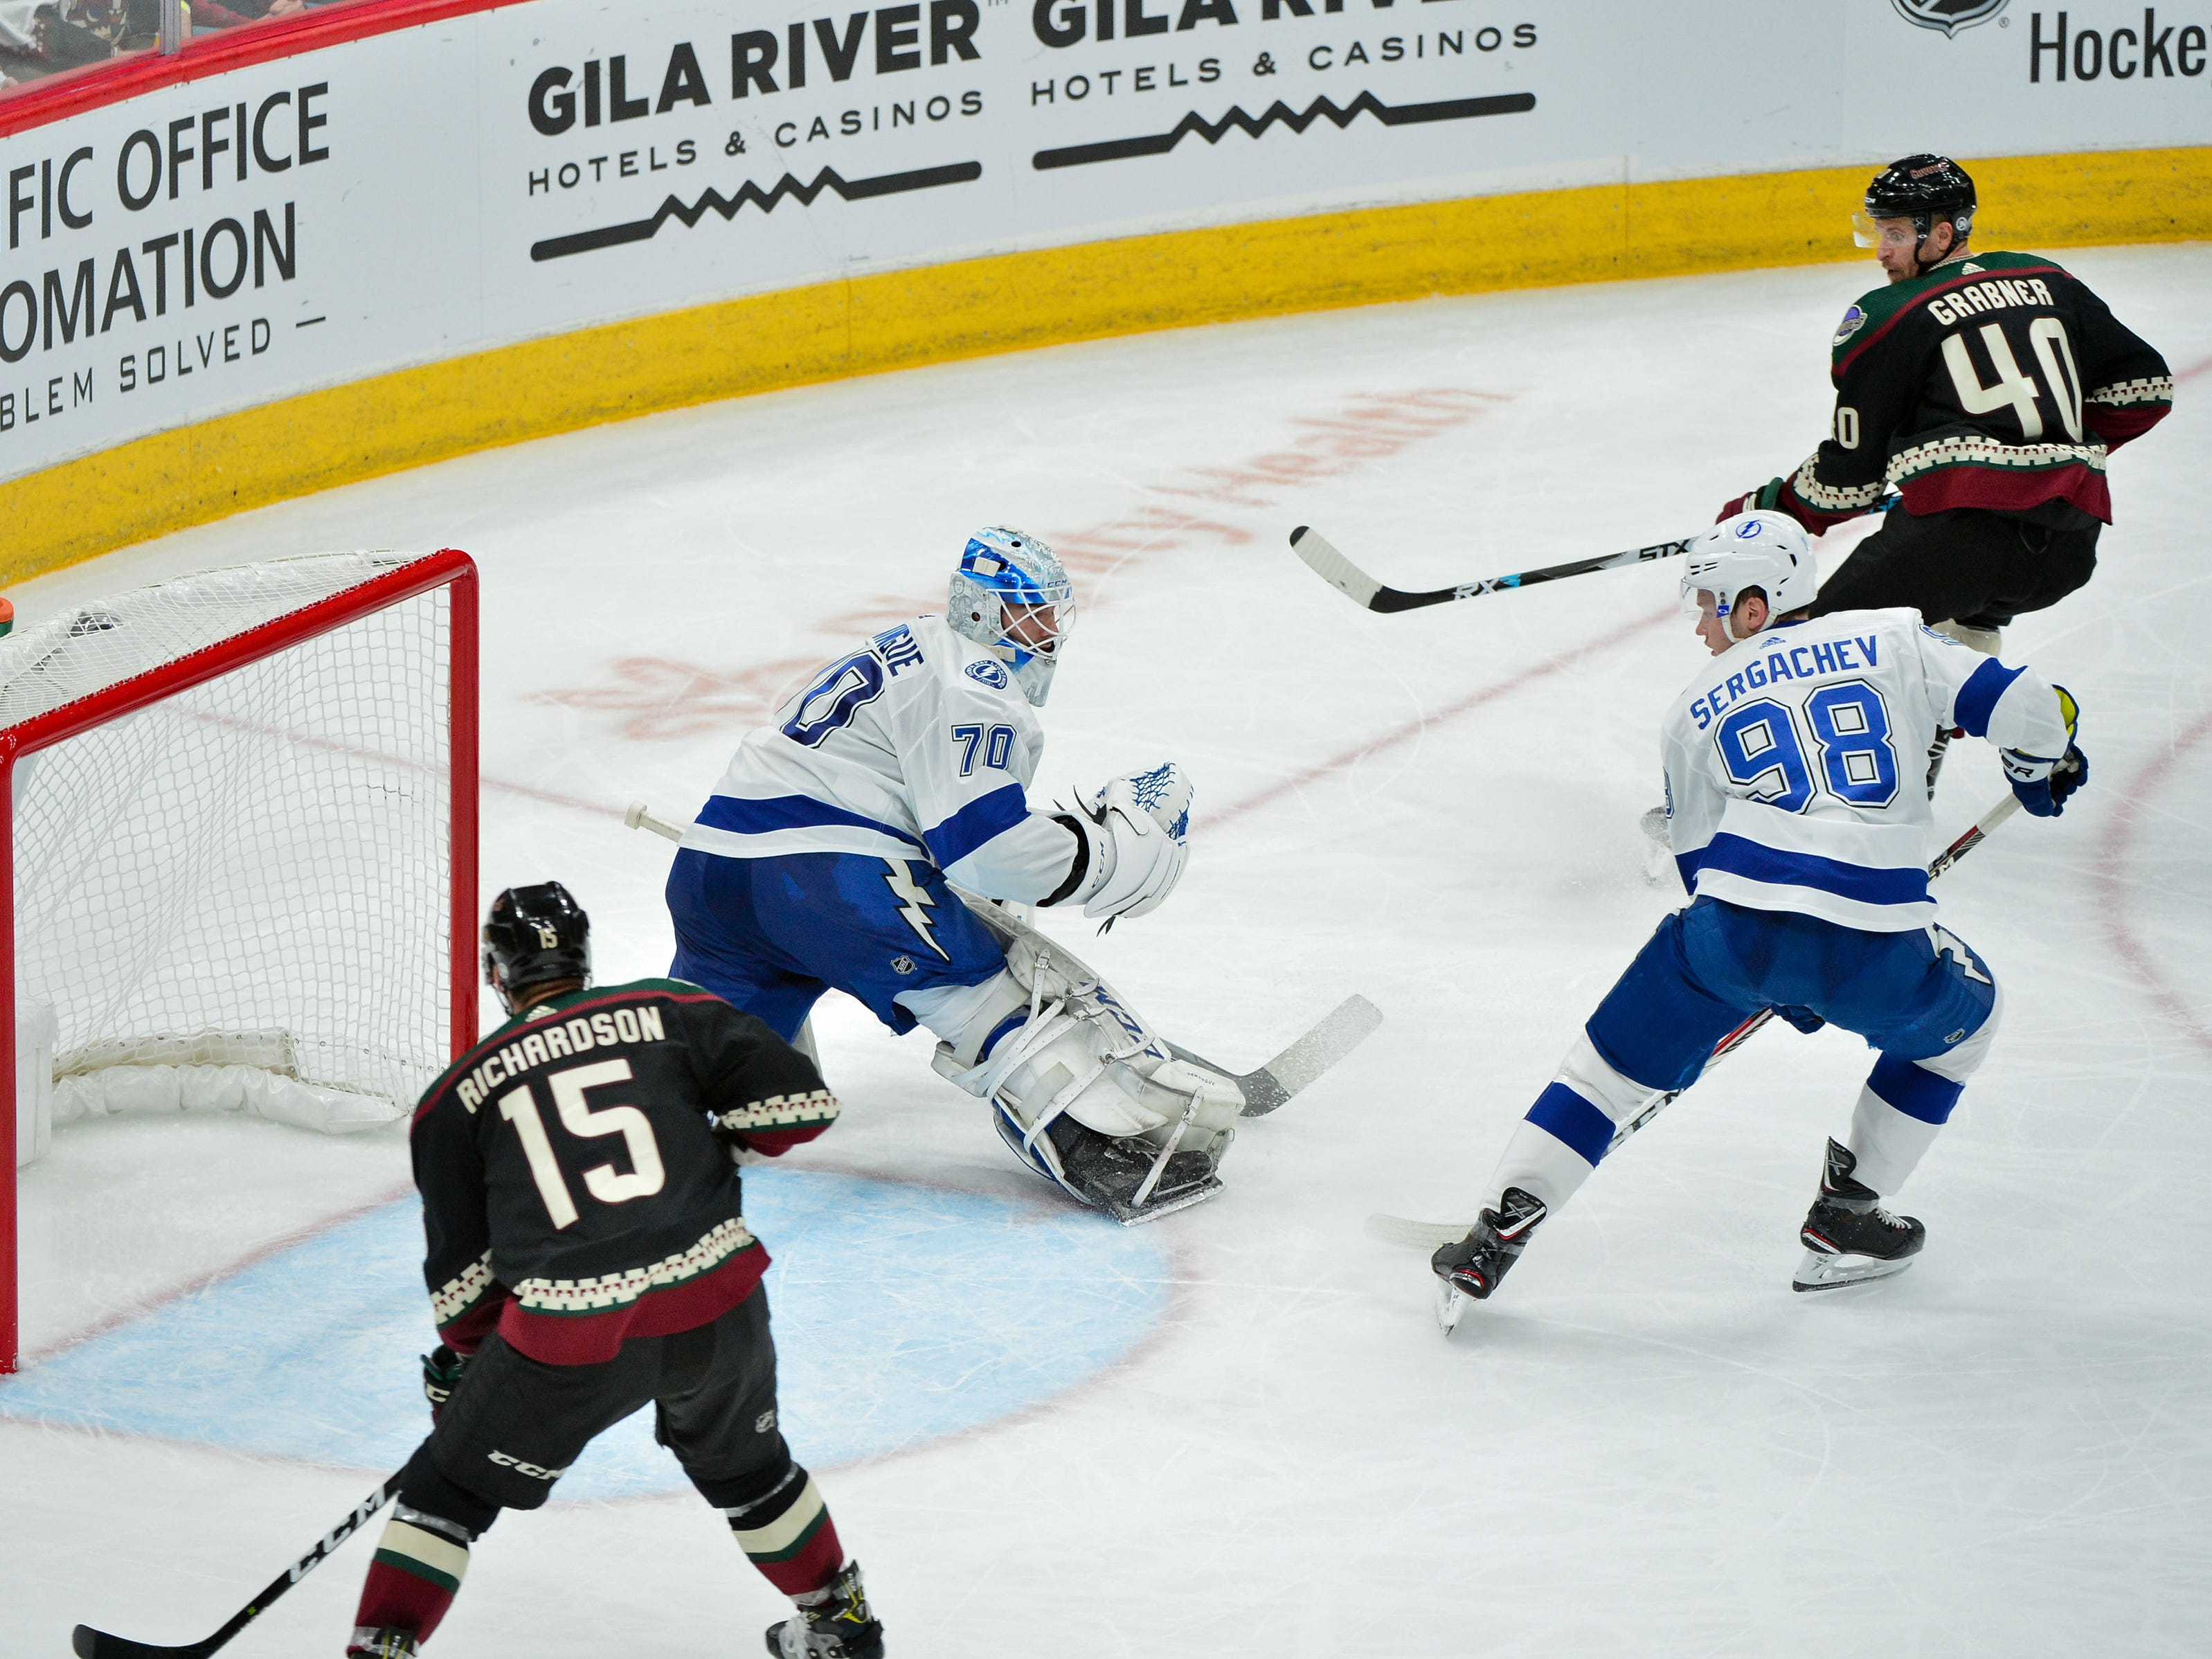 Oct 27, 2018; Glendale, AZ, USA; Arizona Coyotes right wing Michael Grabner (40) scores a short handed goal on Tampa Bay Lightning goaltender Louis Domingue (70) during the second period at Gila River Arena. Mandatory Credit: Matt Kartozian-USA TODAY Sports